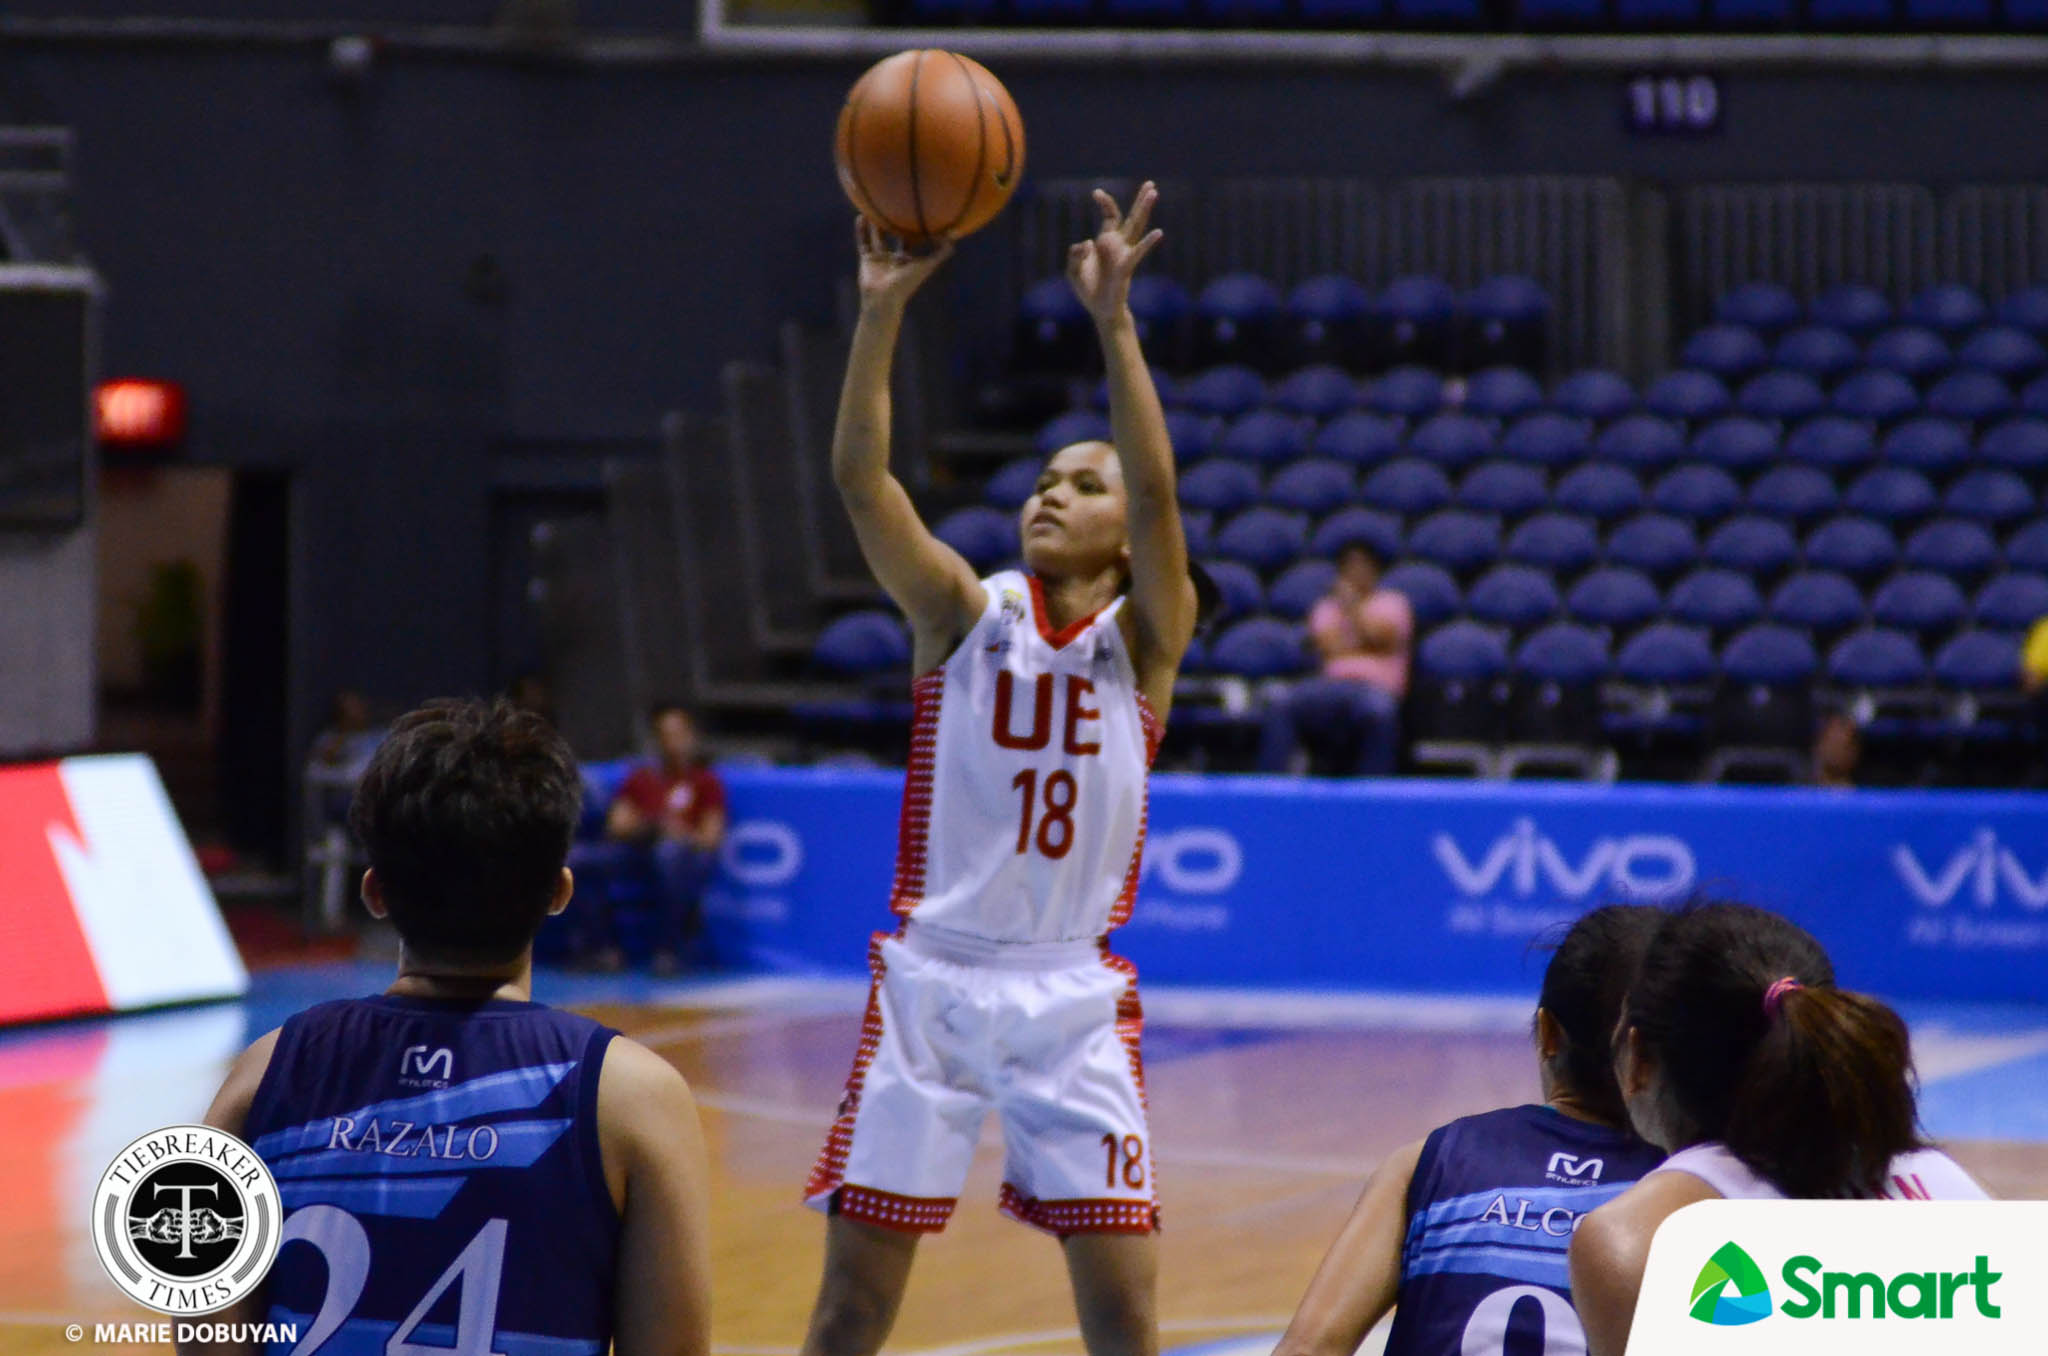 Tiebreaker Times UE regains form, sends Adamson to brink of elimination AdU Basketball News UAAP UE  UE Women's Basketball UAAP Season 80 Women's Basketball UAAP Season 80 Ruthlaine Tacula Love Sto. Domingo Kristeena Camacho John Kallos Christine Cortizano Aileen Lebornio Adamson Women's Basketball